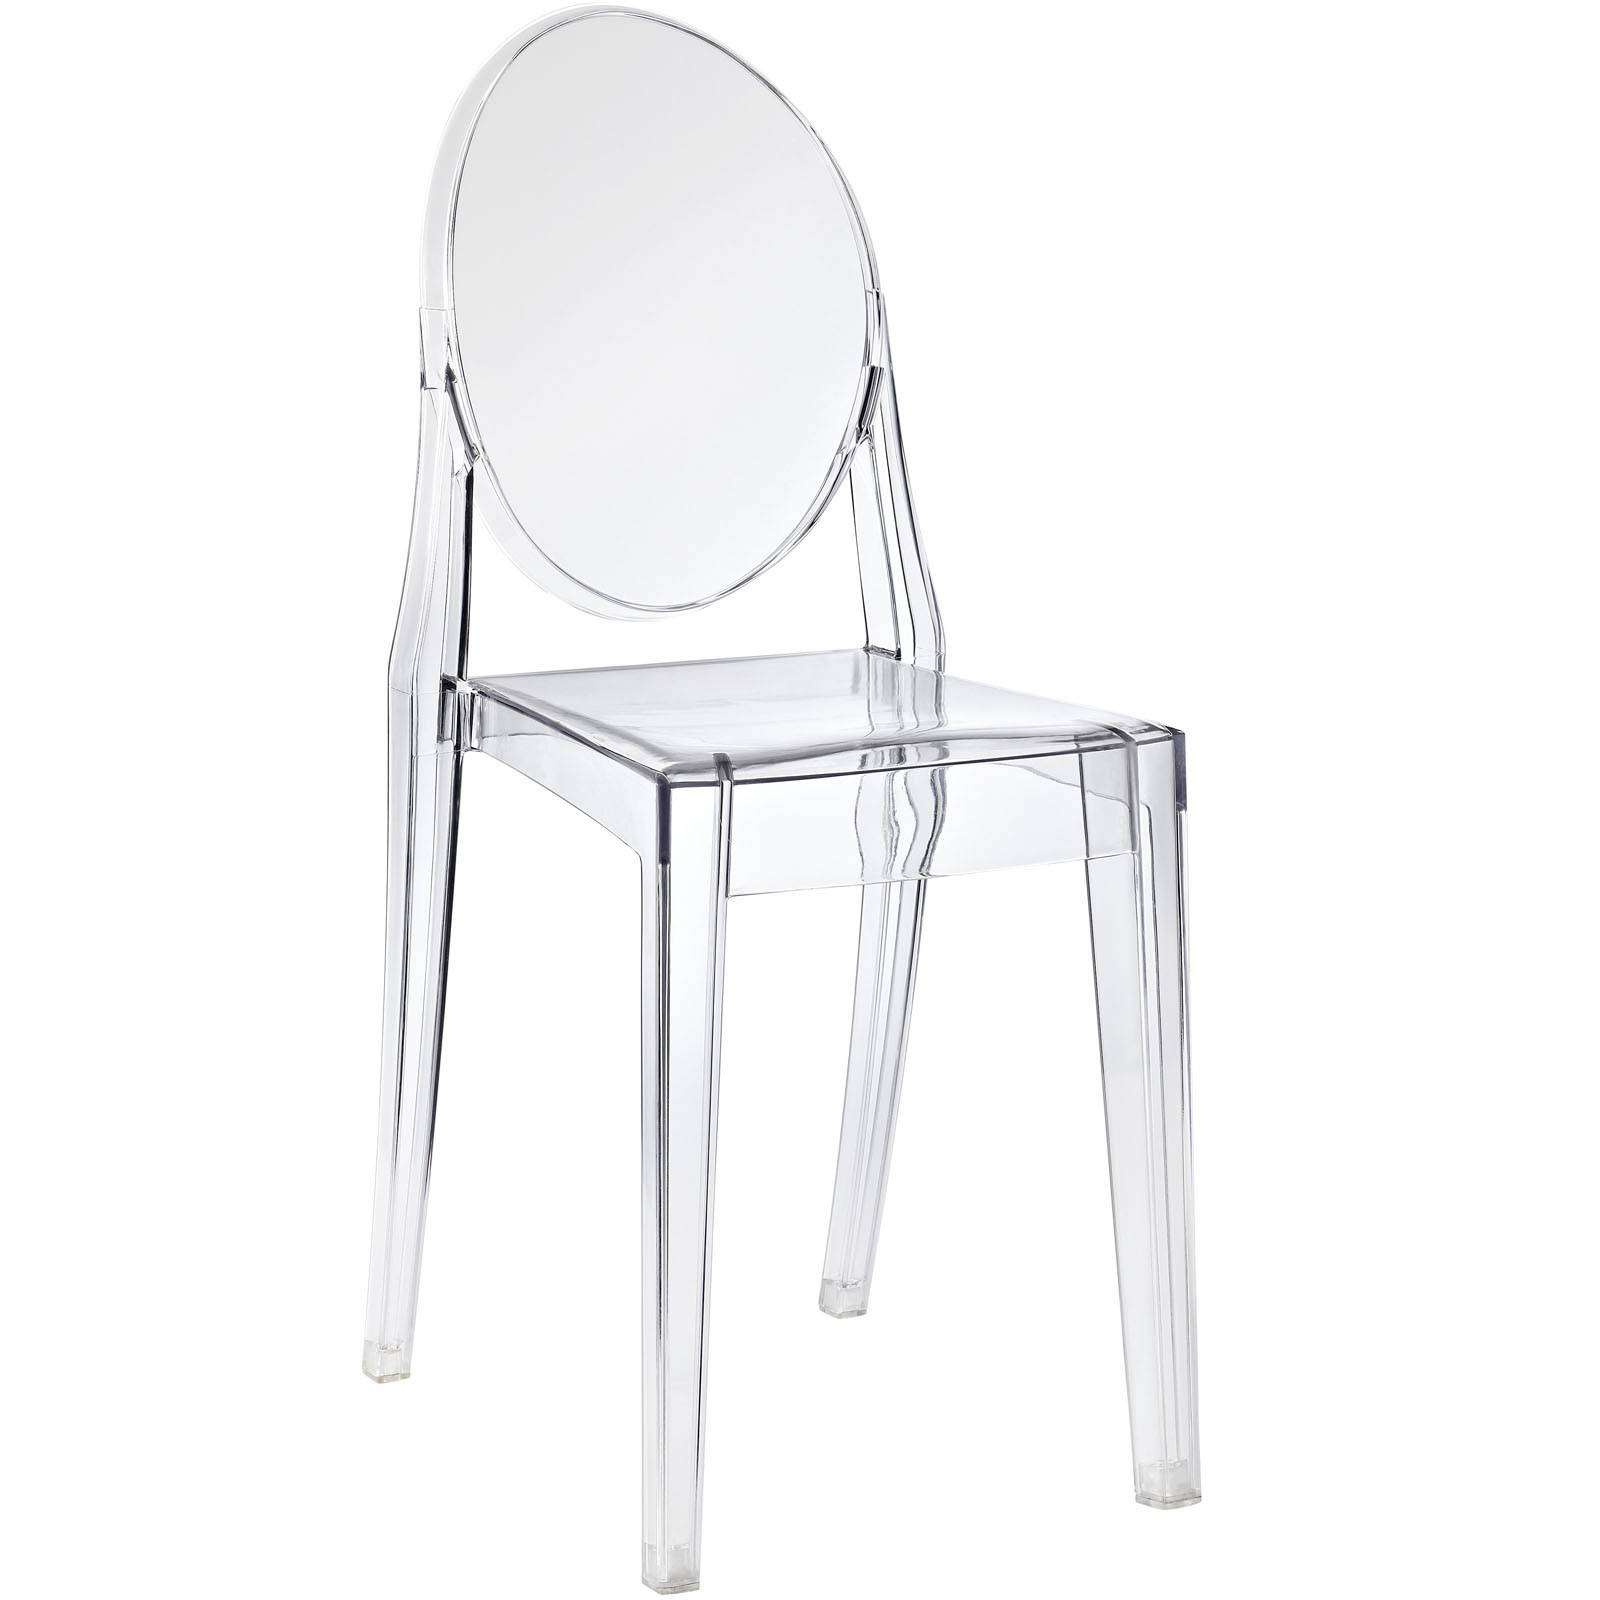 philippe starck style victoria ghost side chair. Black Bedroom Furniture Sets. Home Design Ideas